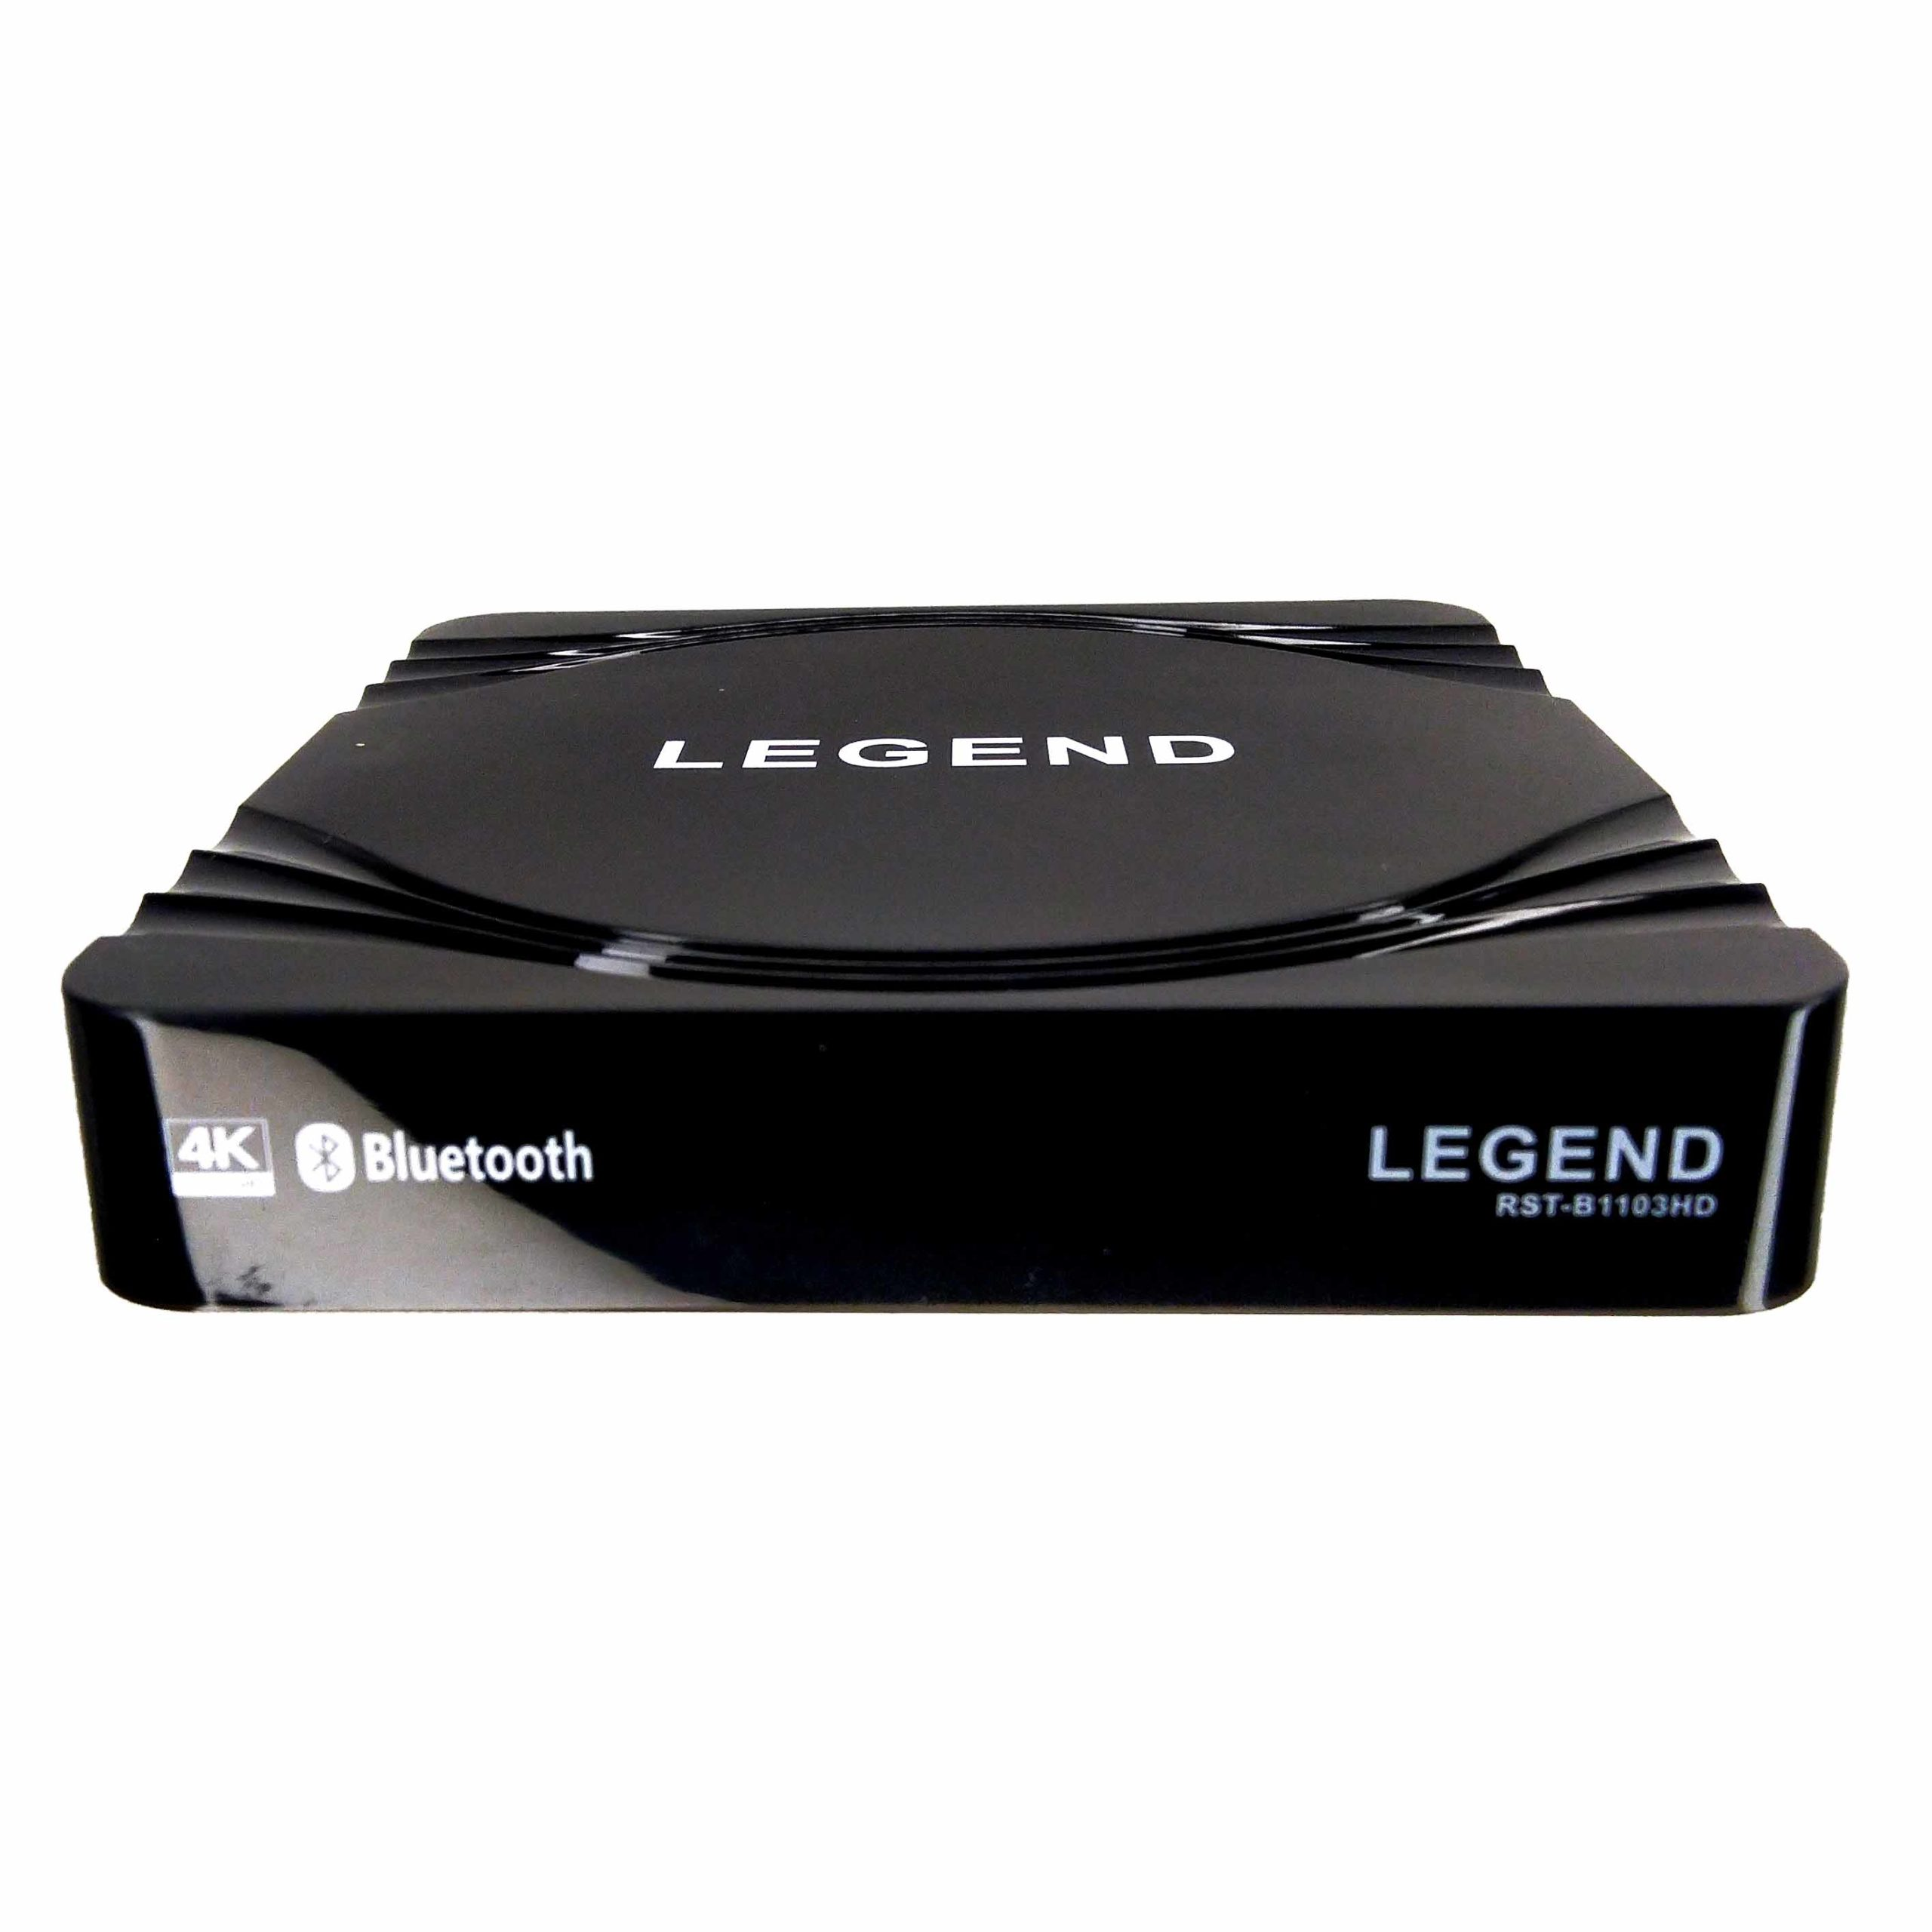 Read more about the article Новинка!!! Приставка LEGEND Android RST-B 1103 HD smart TV